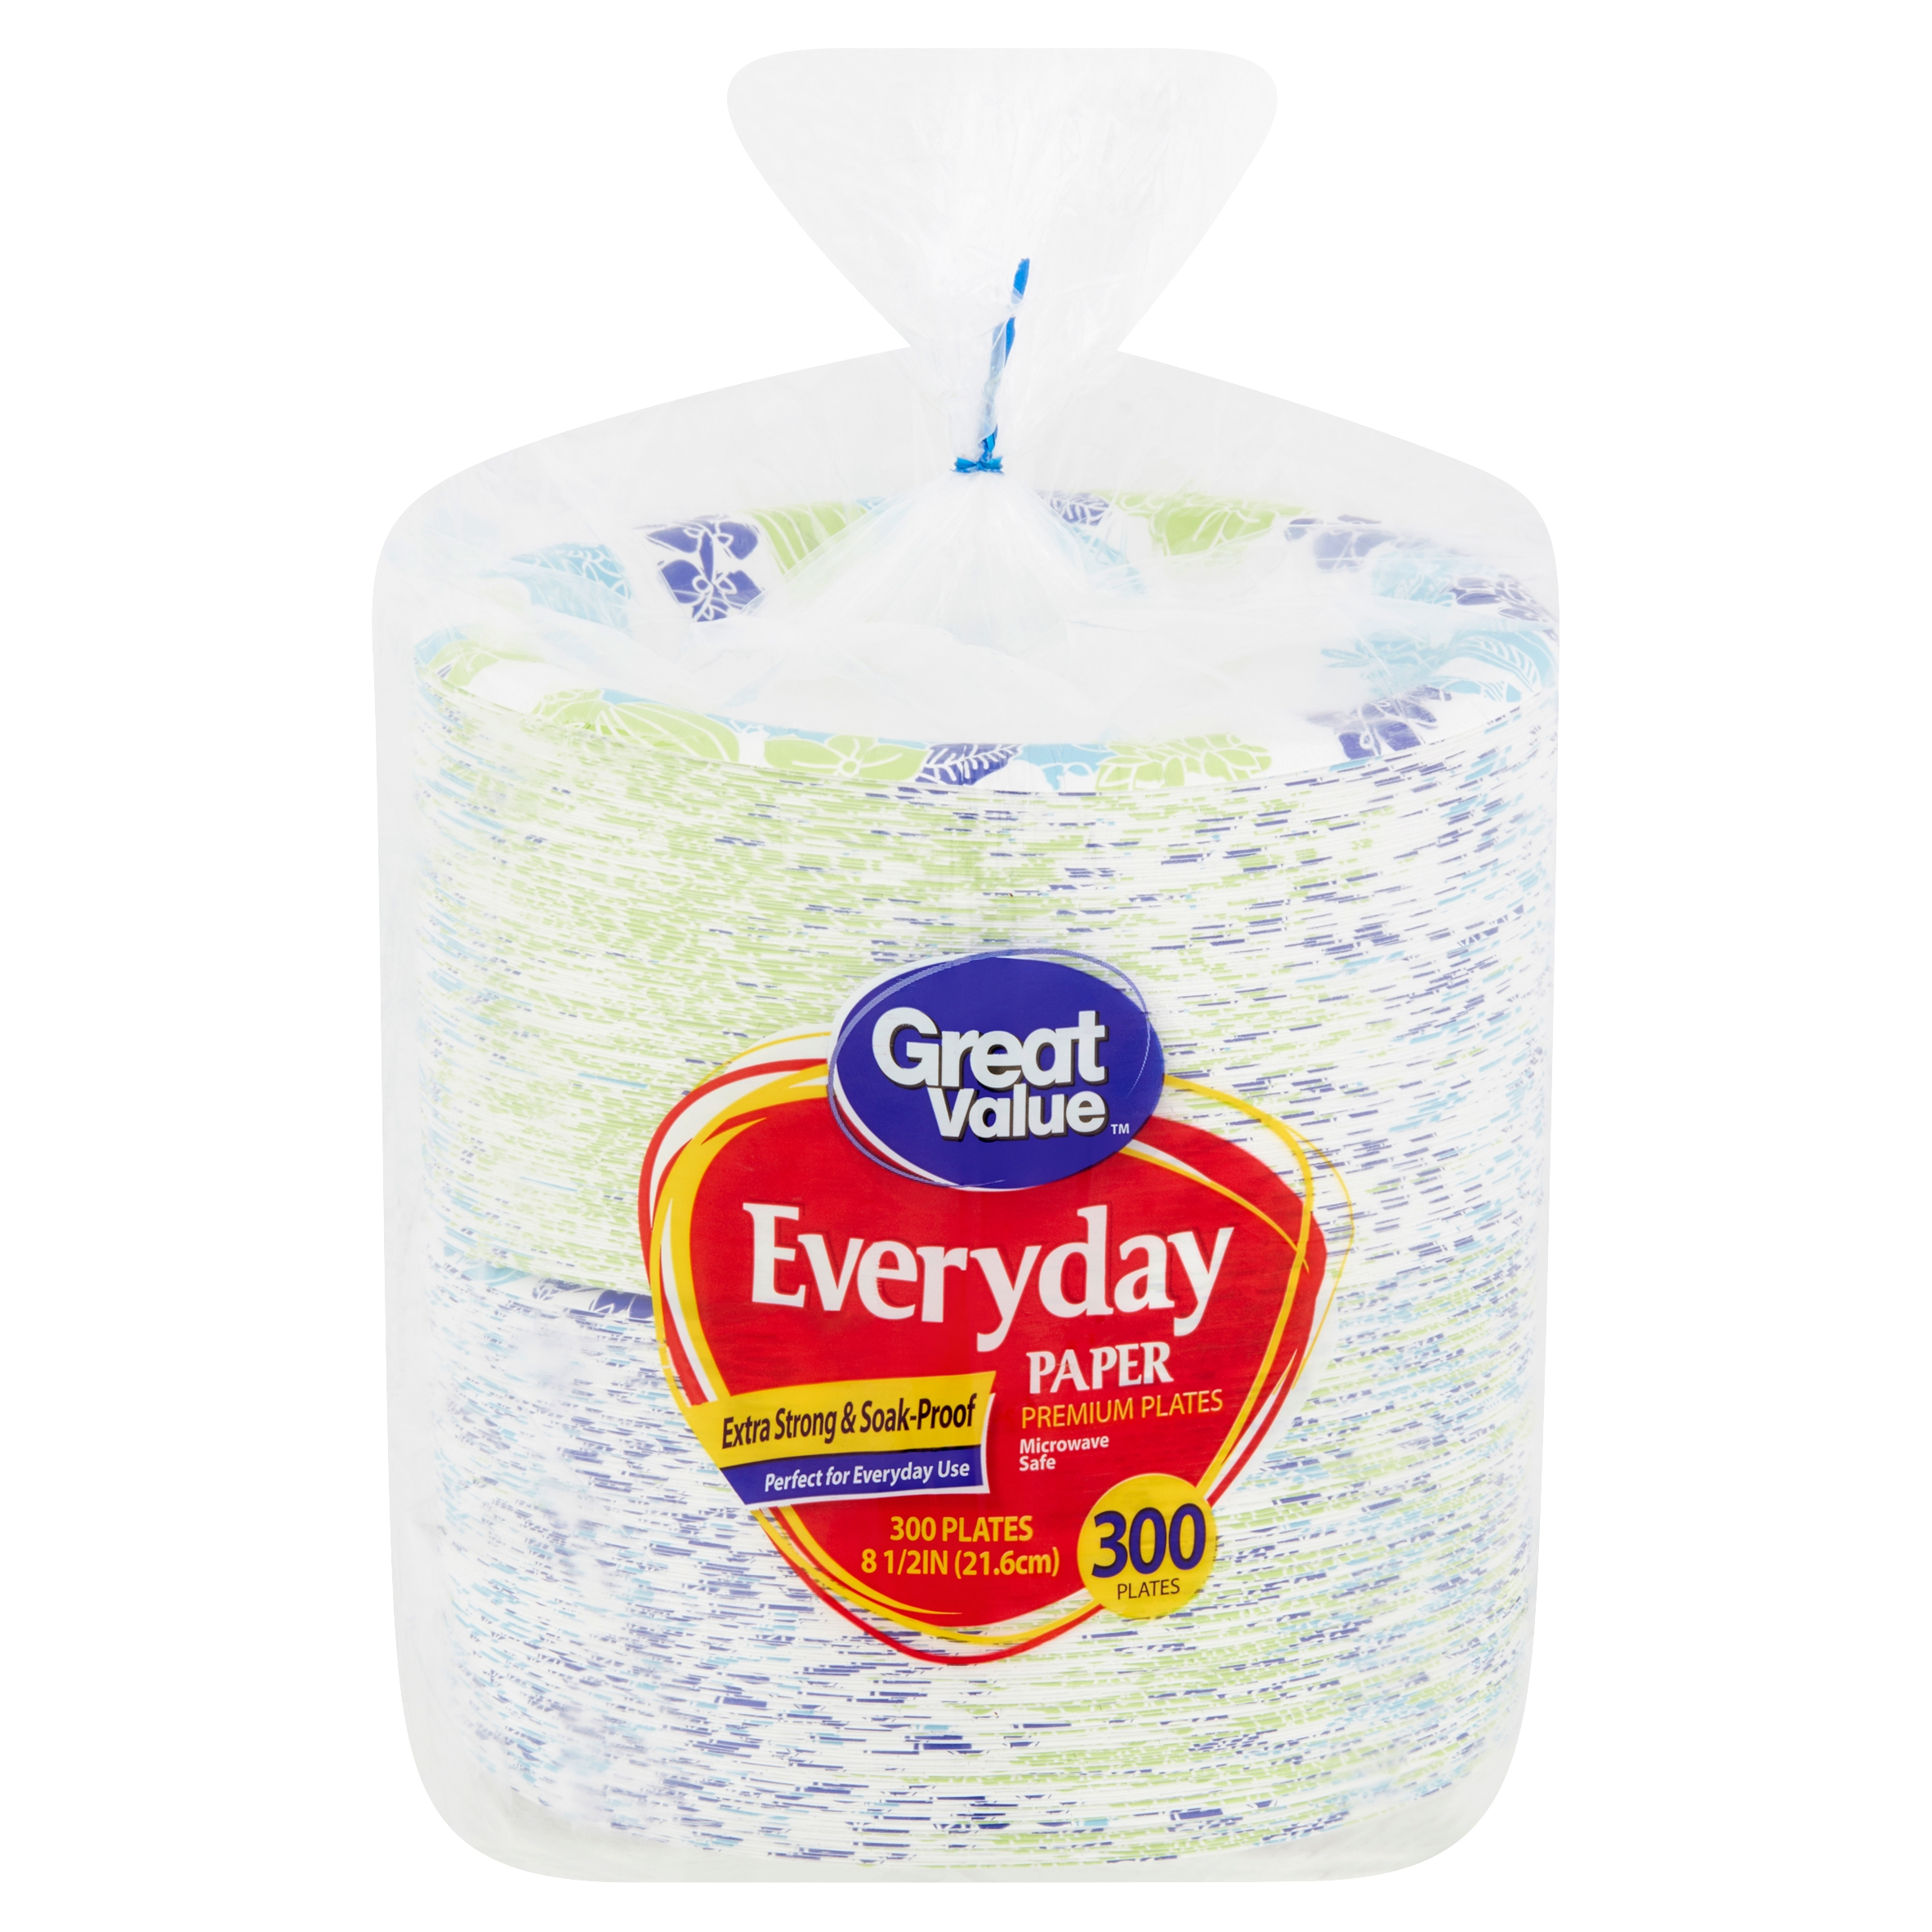 "Great Value Everyday Premium Paper Plates, 8 5/8"", 300 Count"